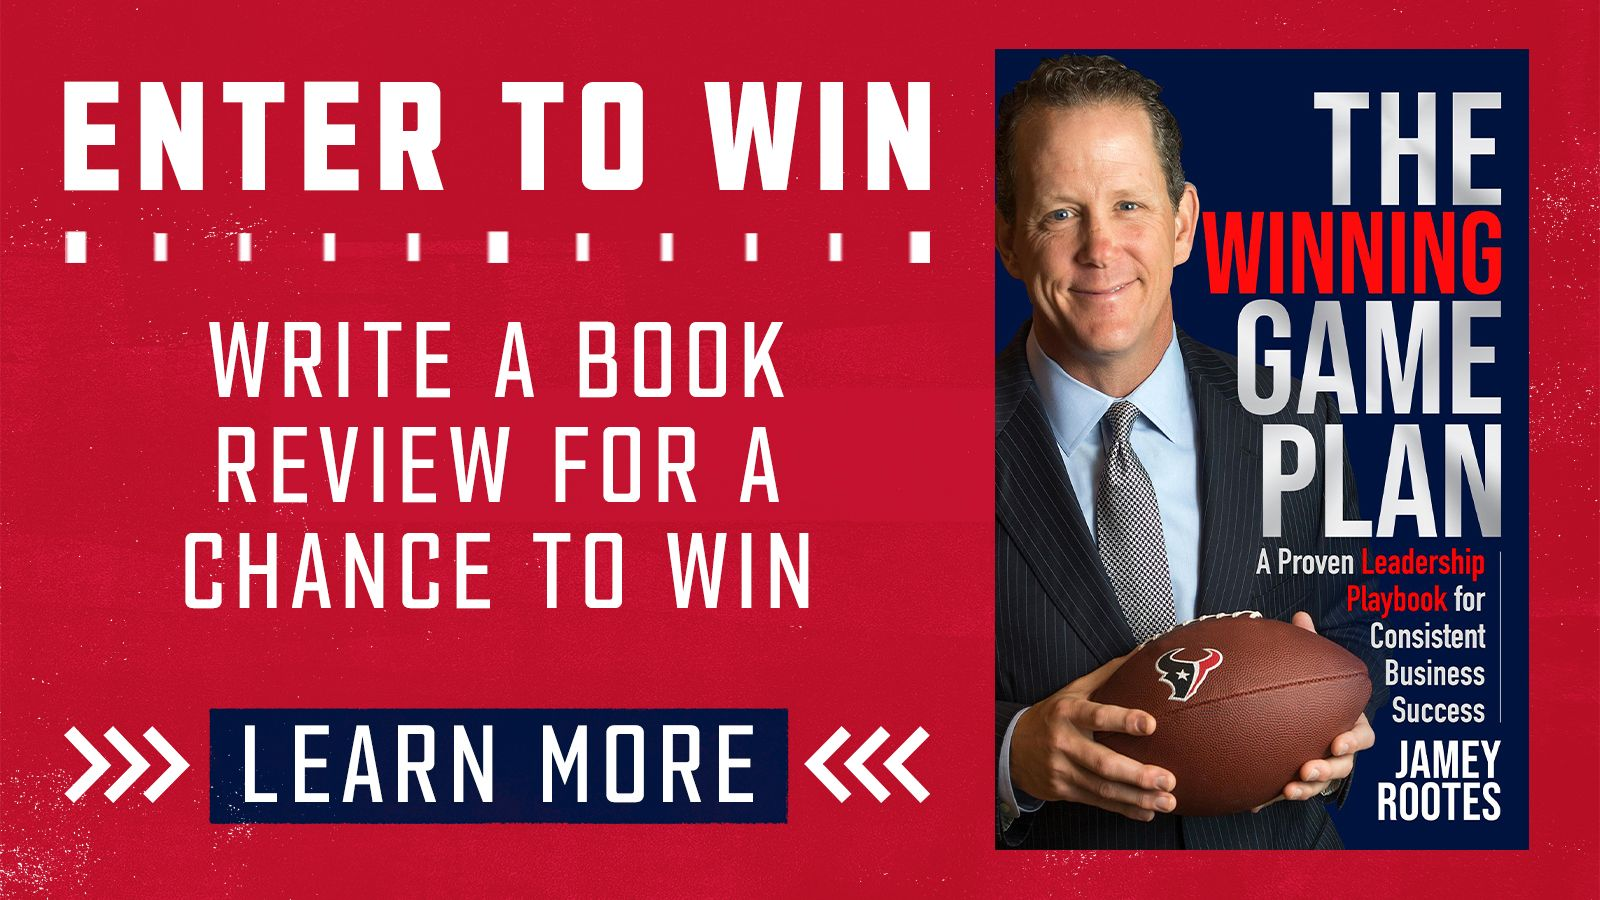 Enter to win. Write a book review for a chance to win. Learn more.